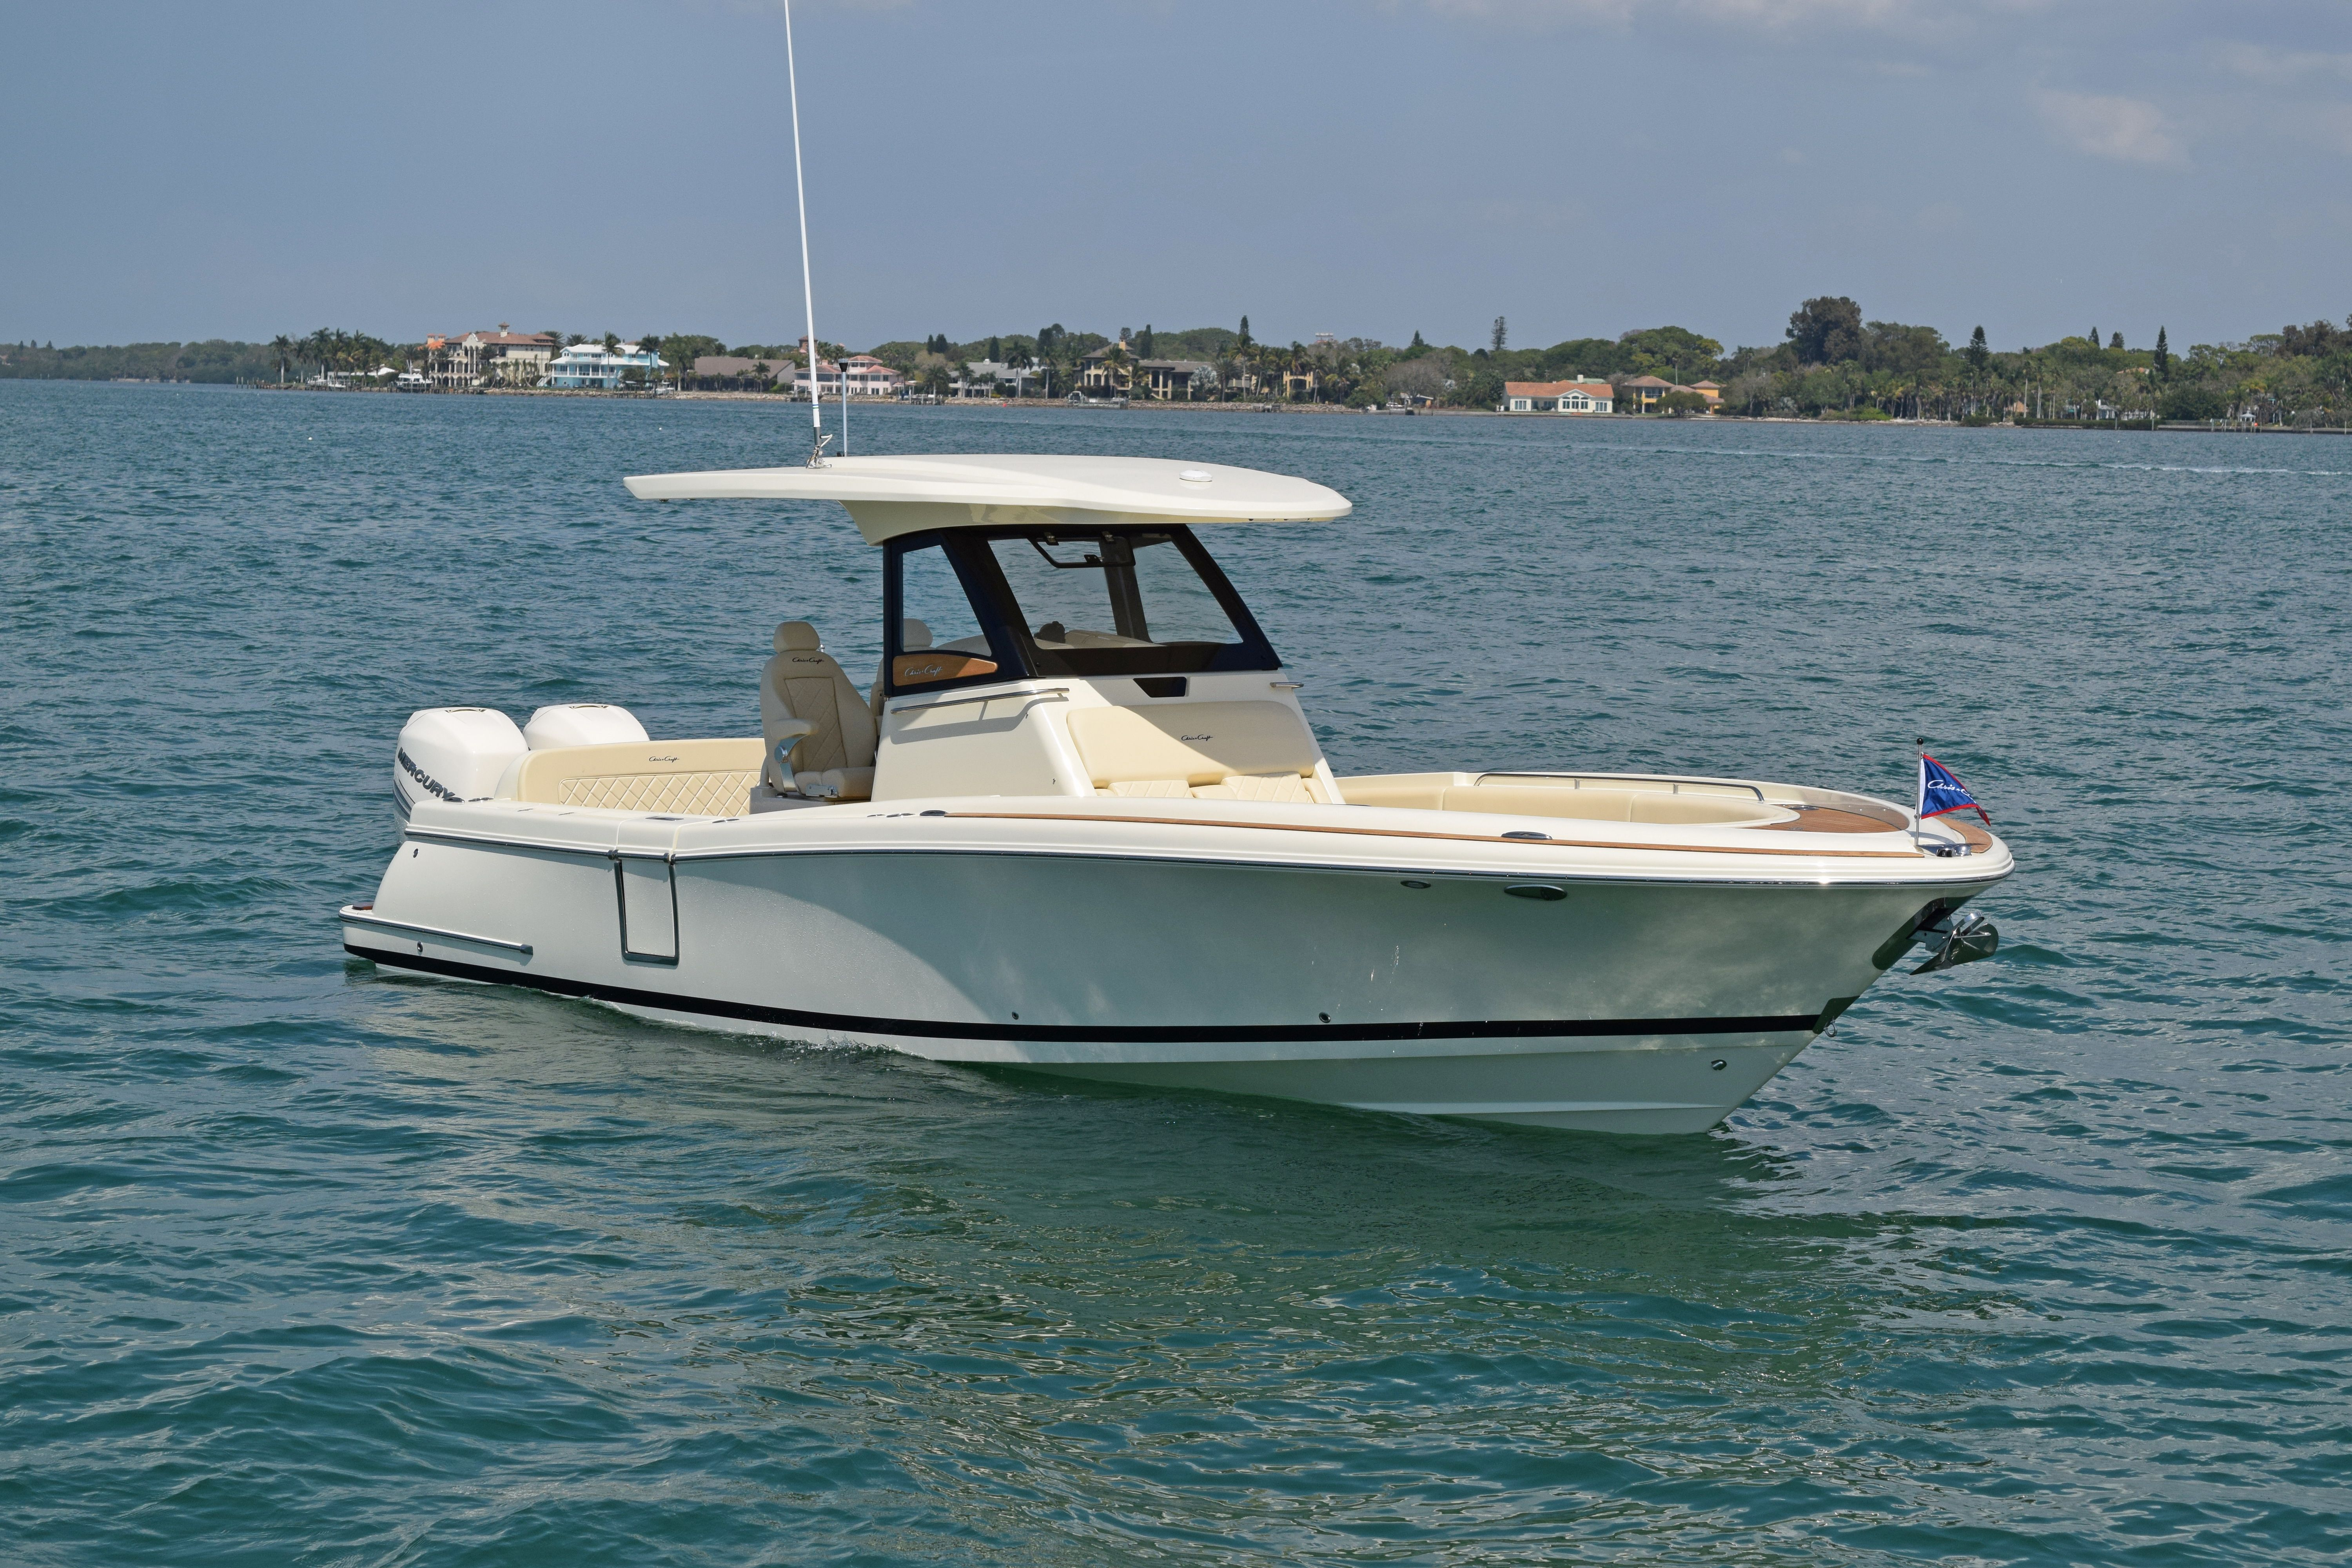 2018 Chris Craft Catalina 30 Power Boat For Sale Www